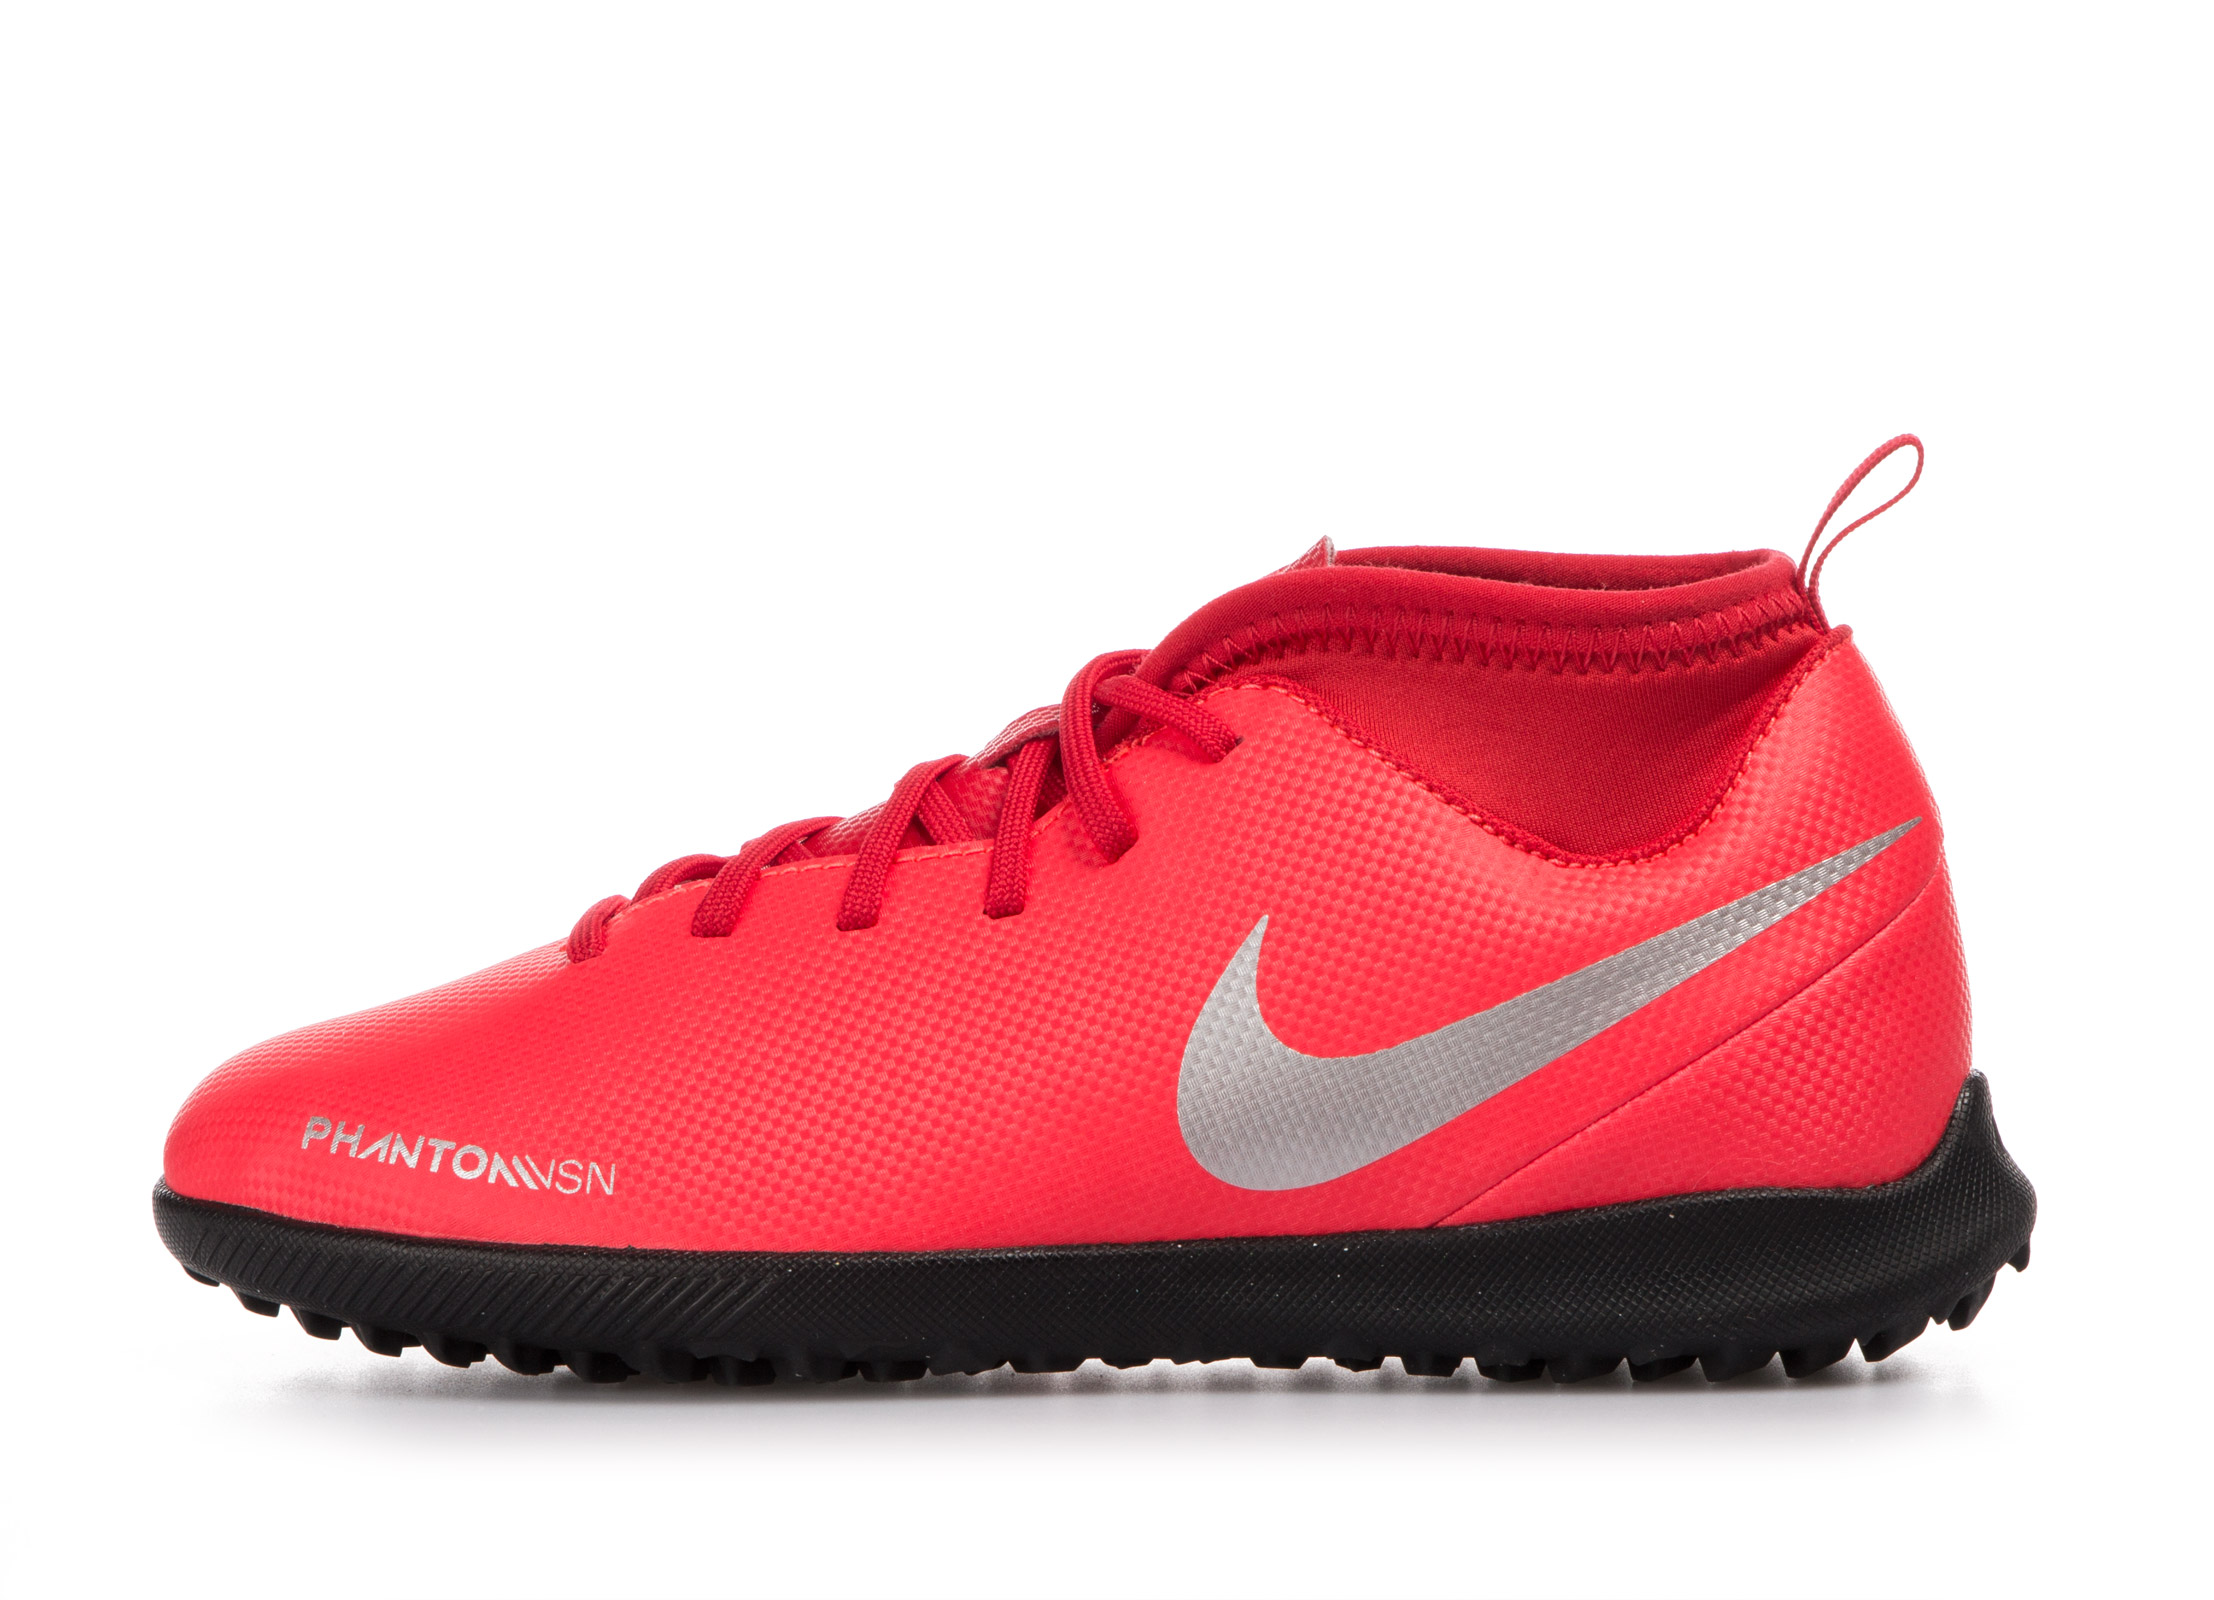 NIKE JR PHANTOM VSN CLUB DF TF AO3294-600 Κοραλί